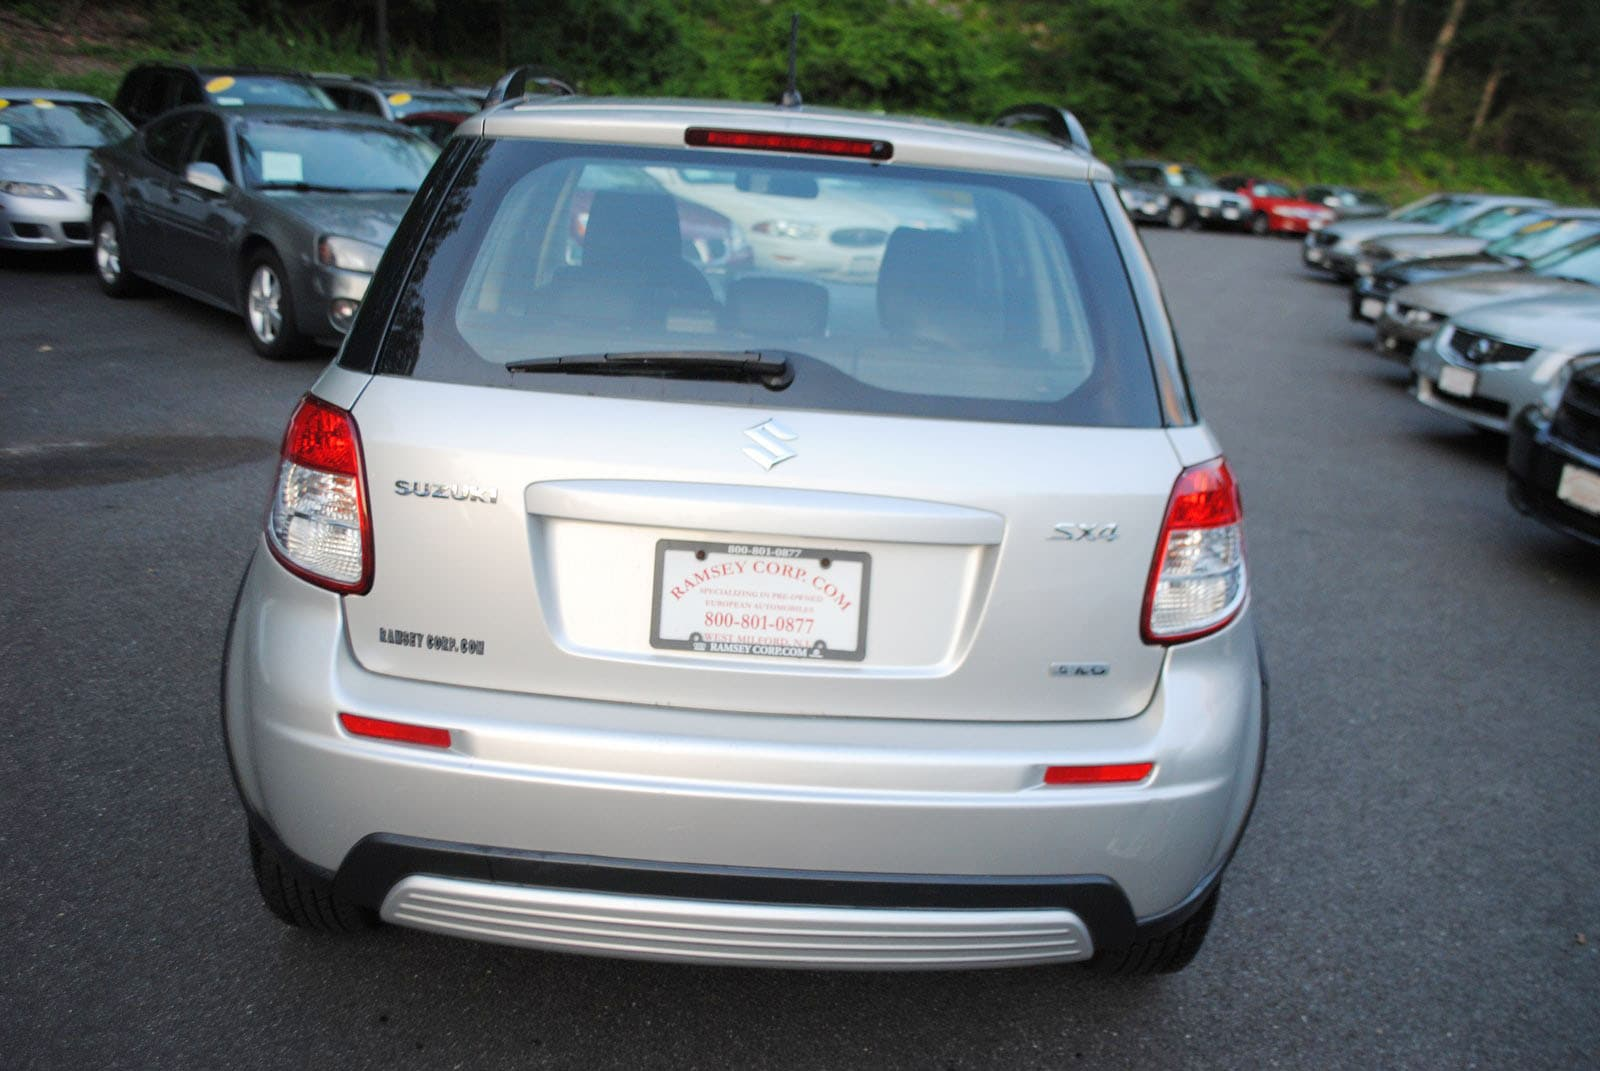 used 2008 suzuki sx4 for sale west milford nj. Black Bedroom Furniture Sets. Home Design Ideas